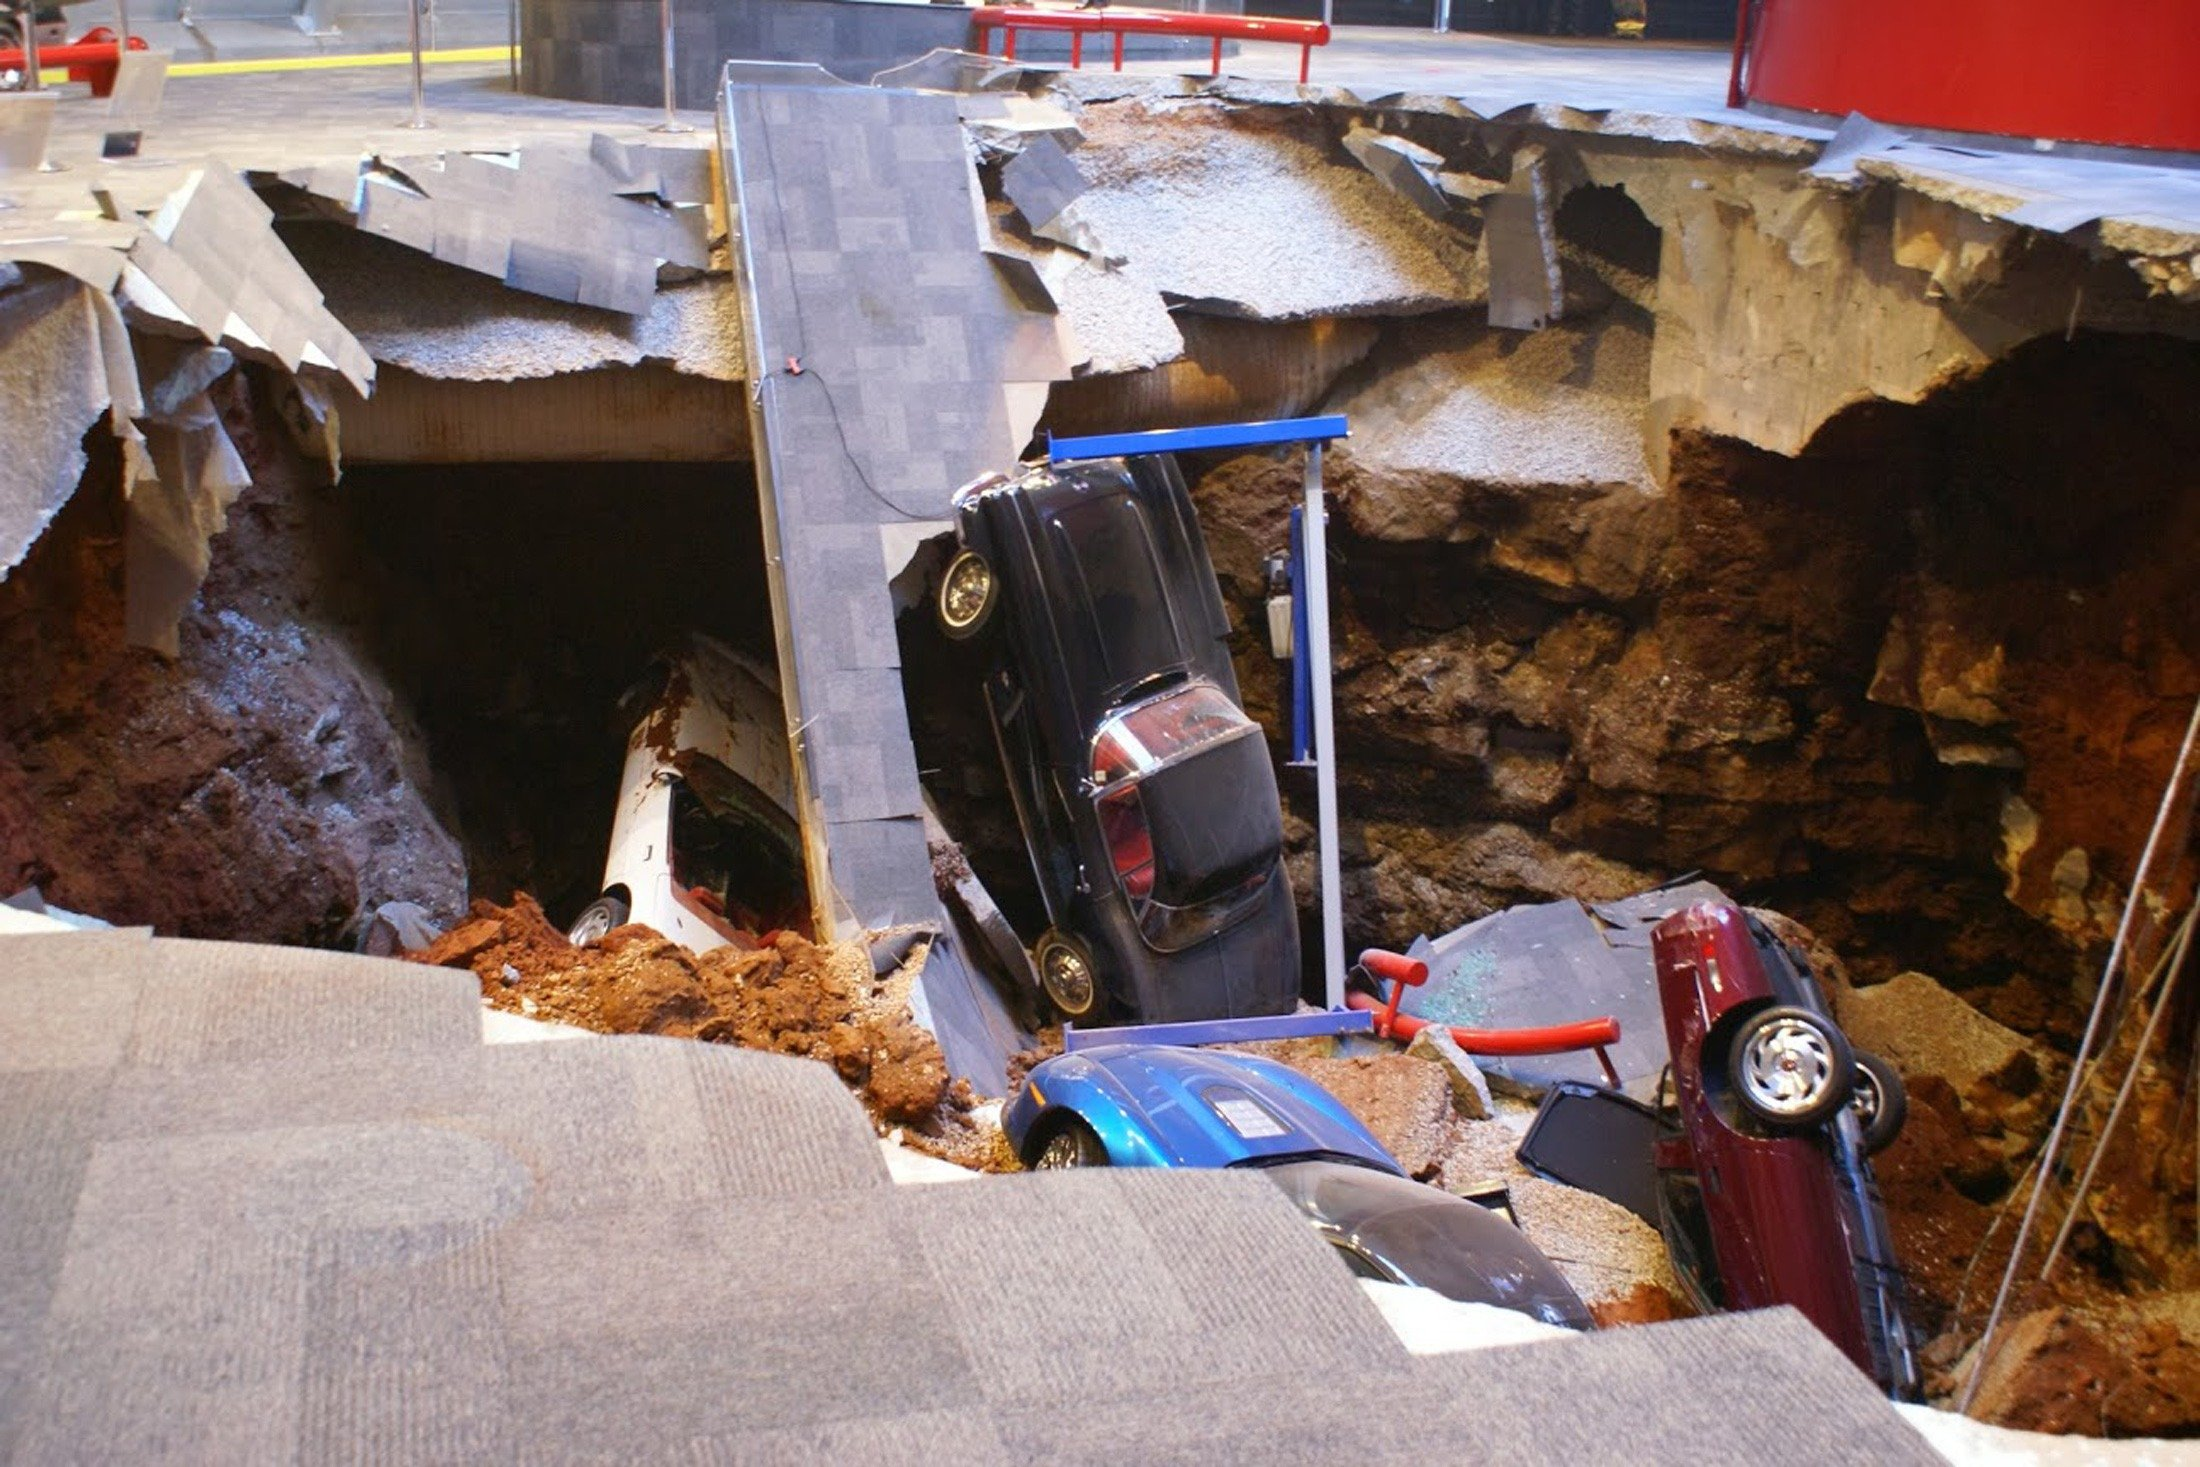 A 40-foot sinkhole opened up under the National Corvette Museum Feb. 12, 2014 and swallowed eight Corvettes, including the historic 1992 White 1 Millionth Corvette, in Bowling Green, Ky.